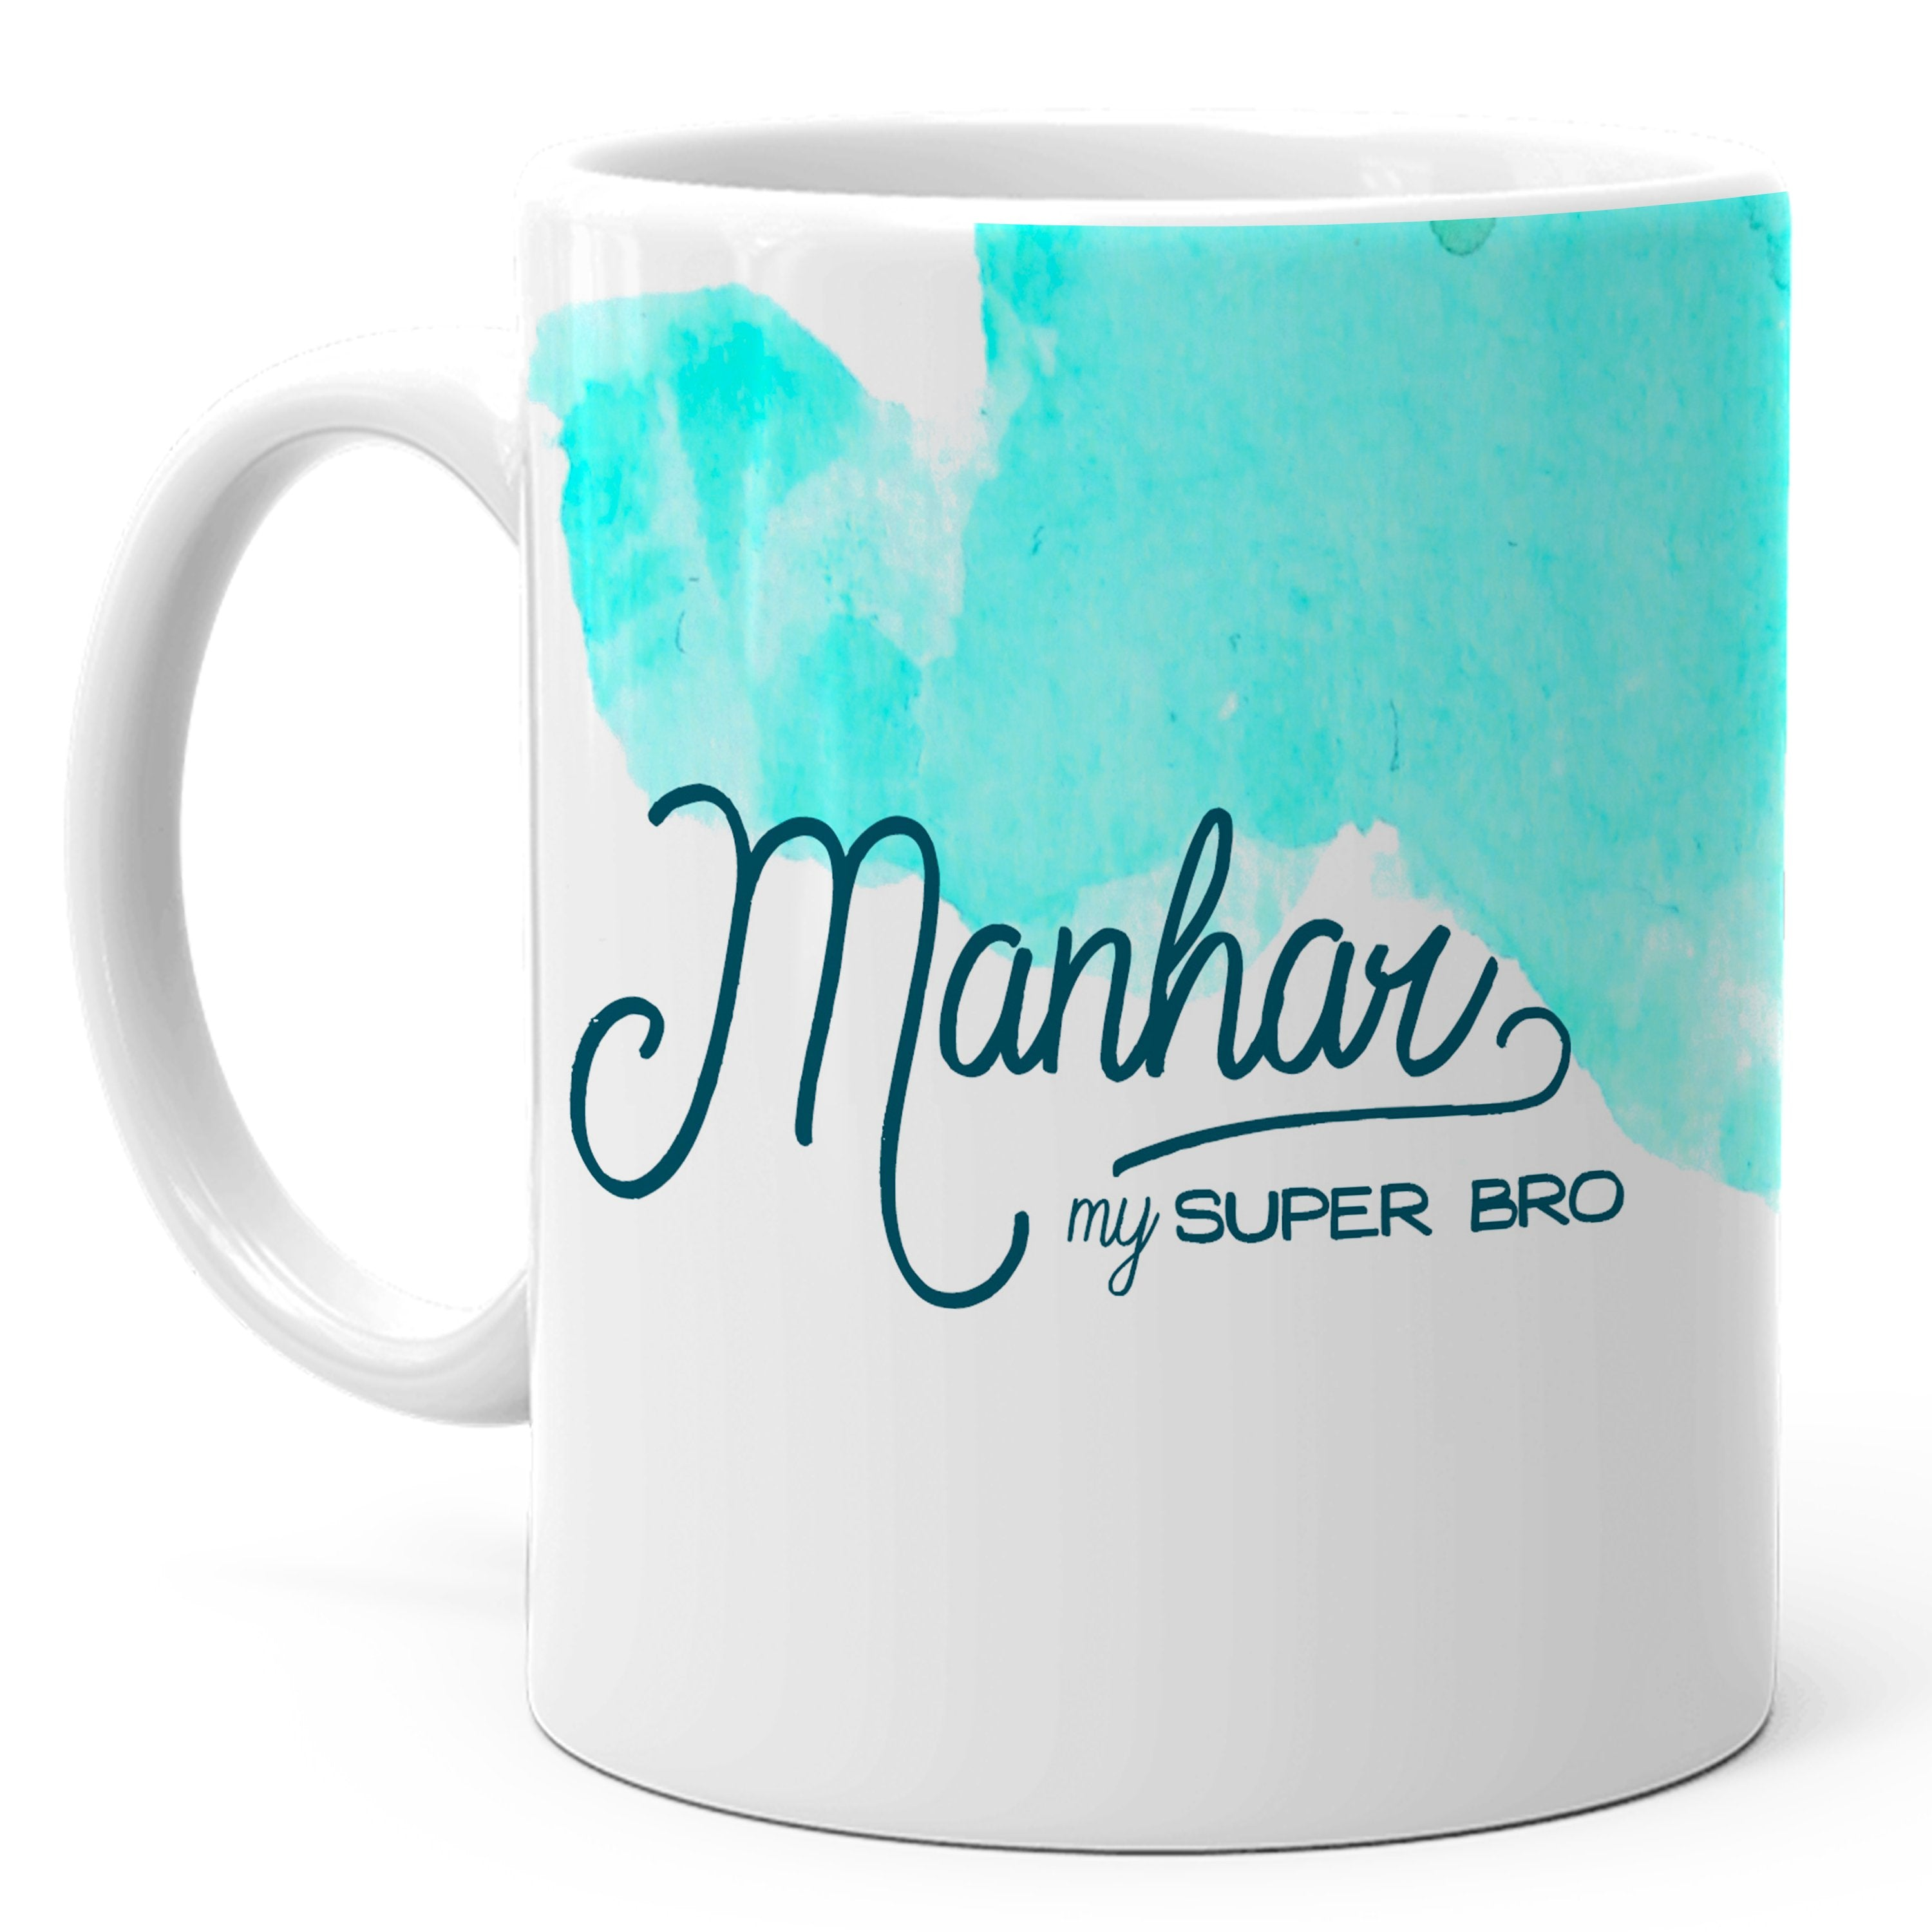 Manhar - My Super Bro Ceramic Mug, 350ml, 1 Pc